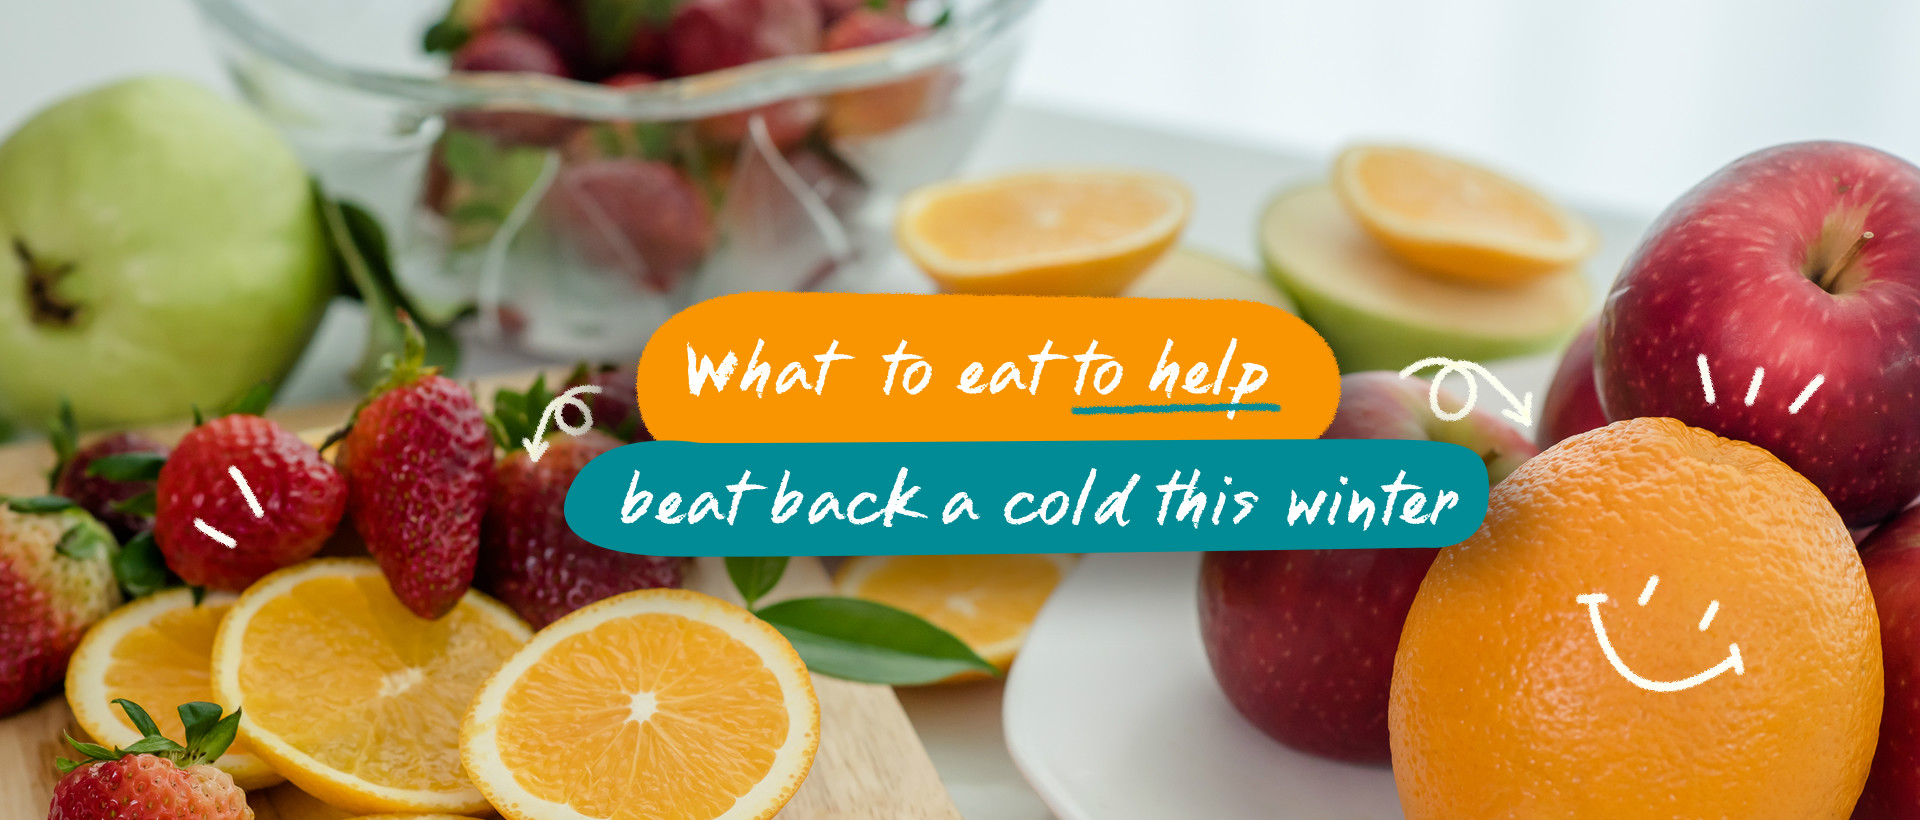 What to eat to help beat back a cold this winter